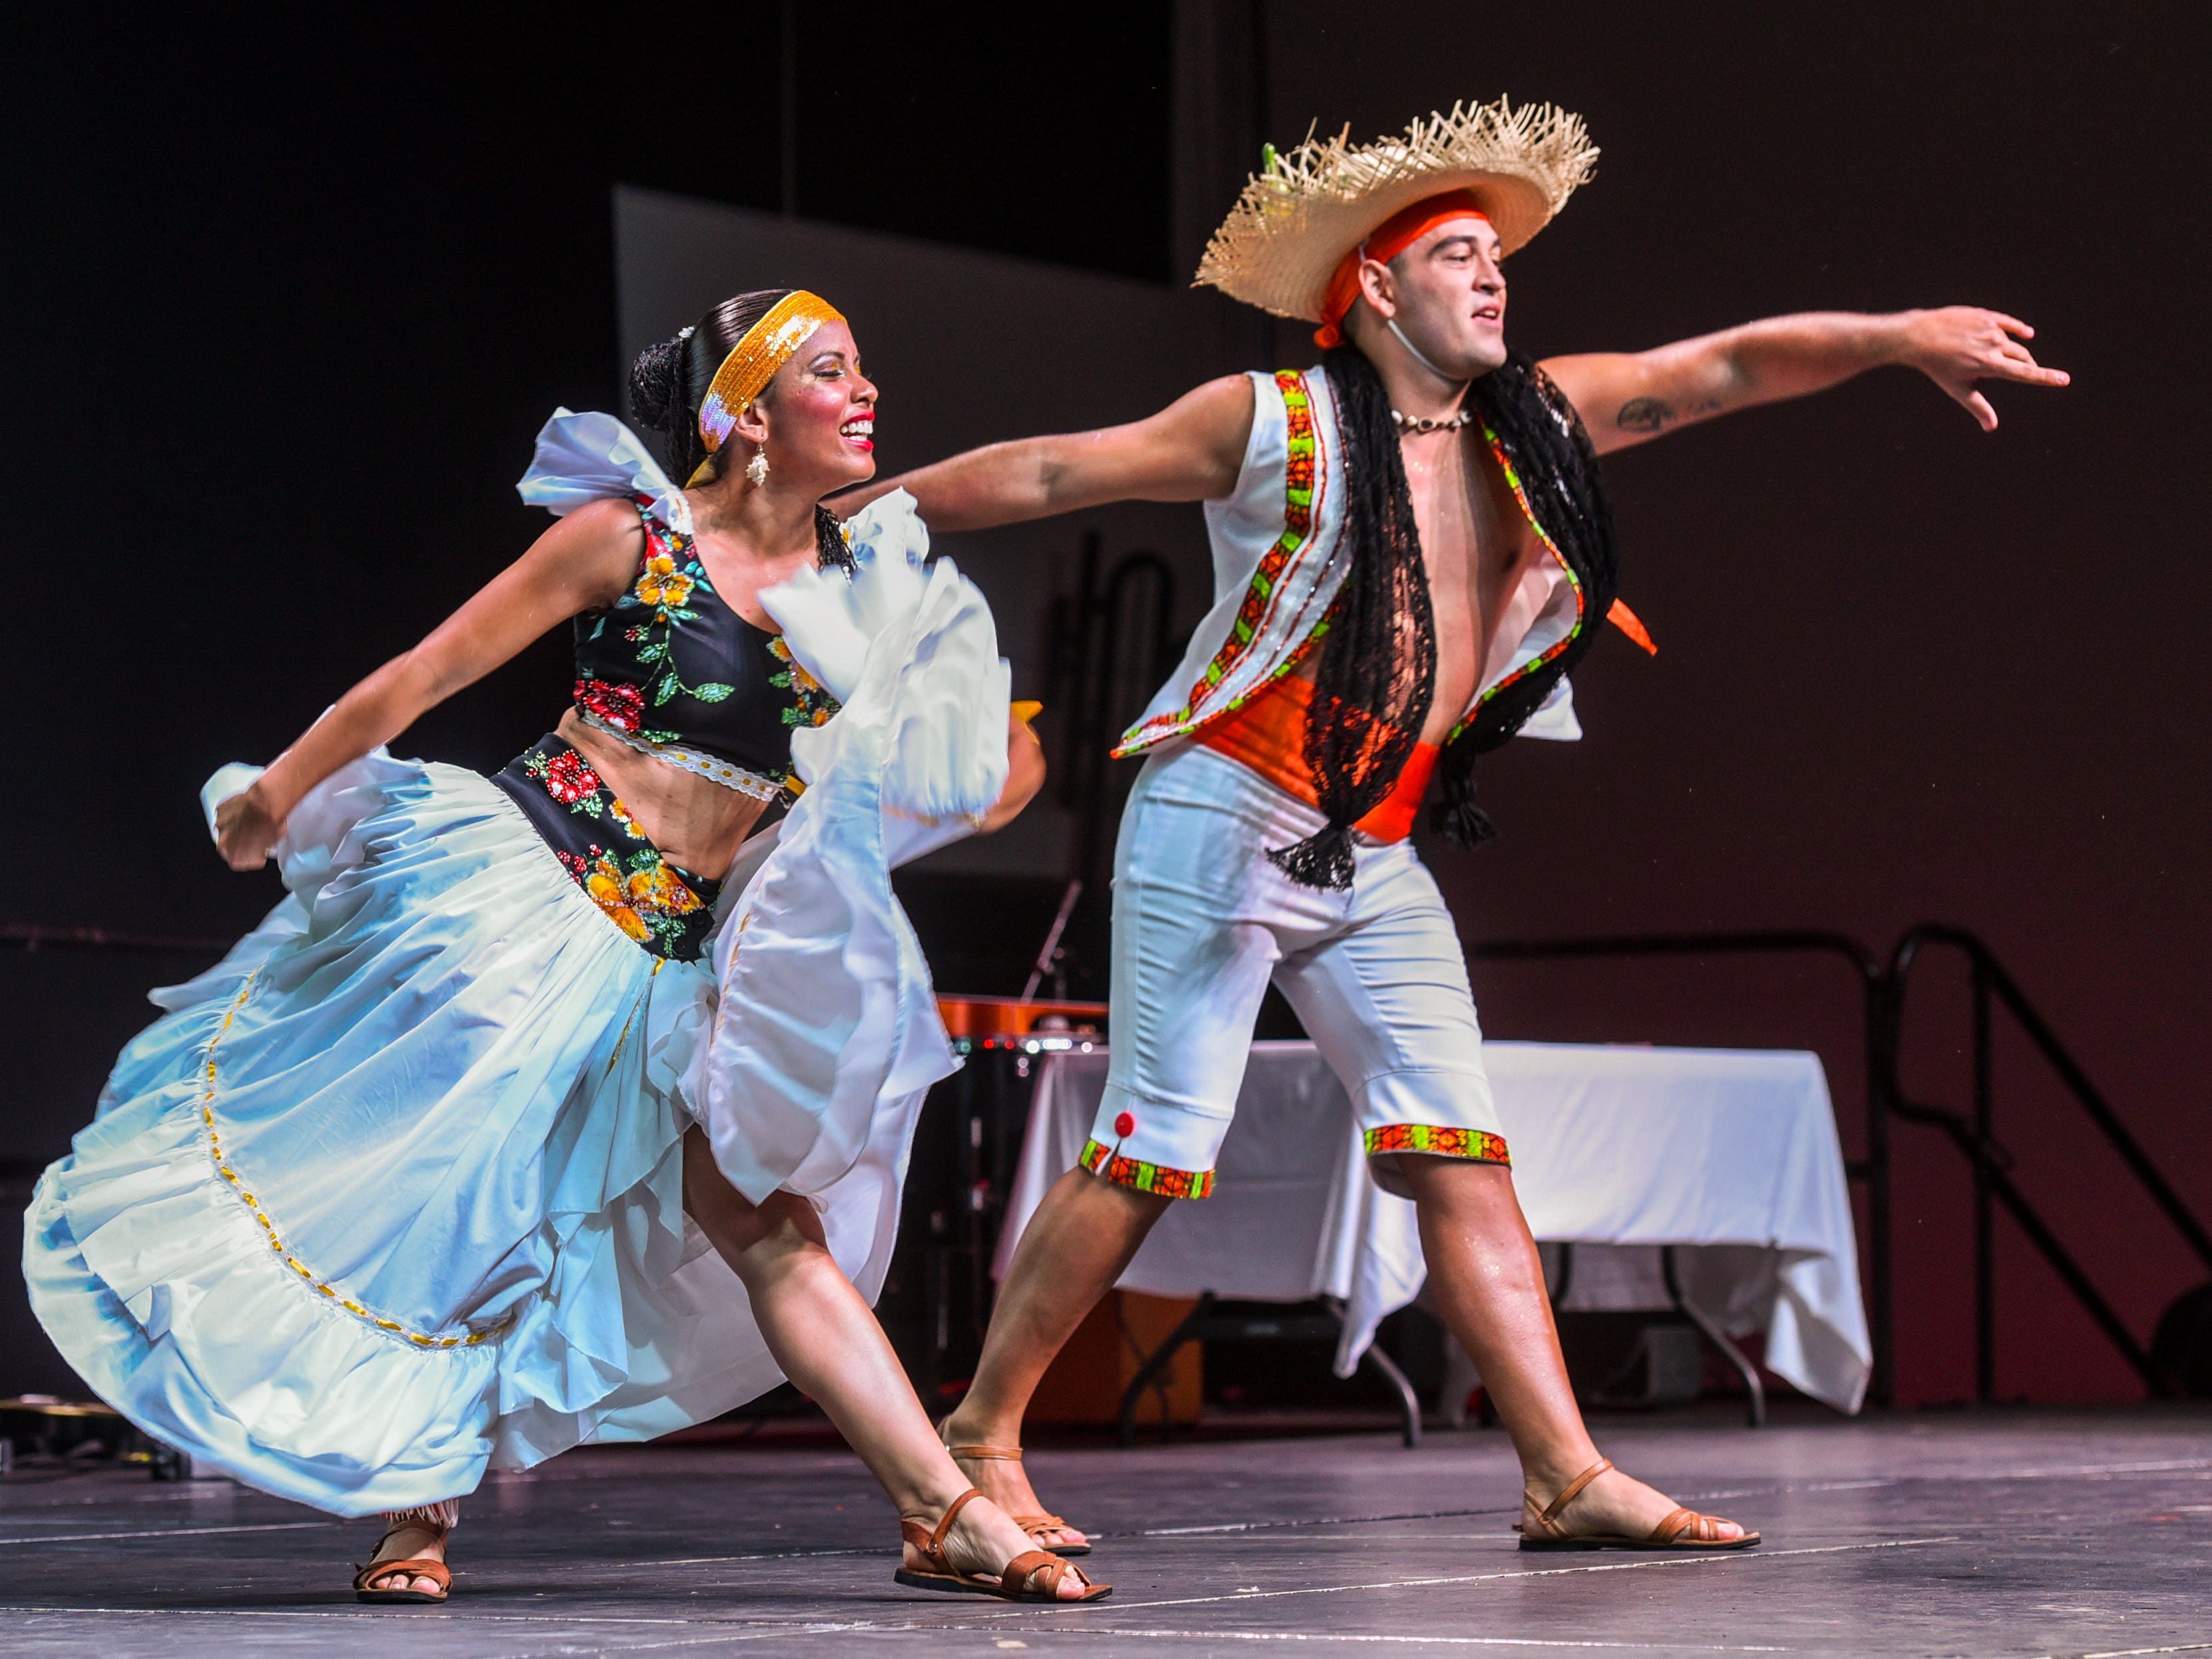 Members of Costa Rica's Inspiraciones Costarricenses perform during a matinee show of the 3rd International Dance Festival at the University of Guam Calvo Field House in Mangilao on Wednesday, Dec. 5, 2018. The festival, presented by Inetnon Gefpa'go Cultural Arts Program Inc., is also slated to feature dancers representing the countries of Argentina, Mexico, Philippines, Finland and Guam. Shows are scheduled to be held at UOG on Thursday morning and Saturday evening. Additional public shows are scheduled at Dec. 6, 6:30 p.m., Thursday at the Micronesia Mall and another at Dec. 7, 7:30 p.m., Saturday at the Guam Museum.